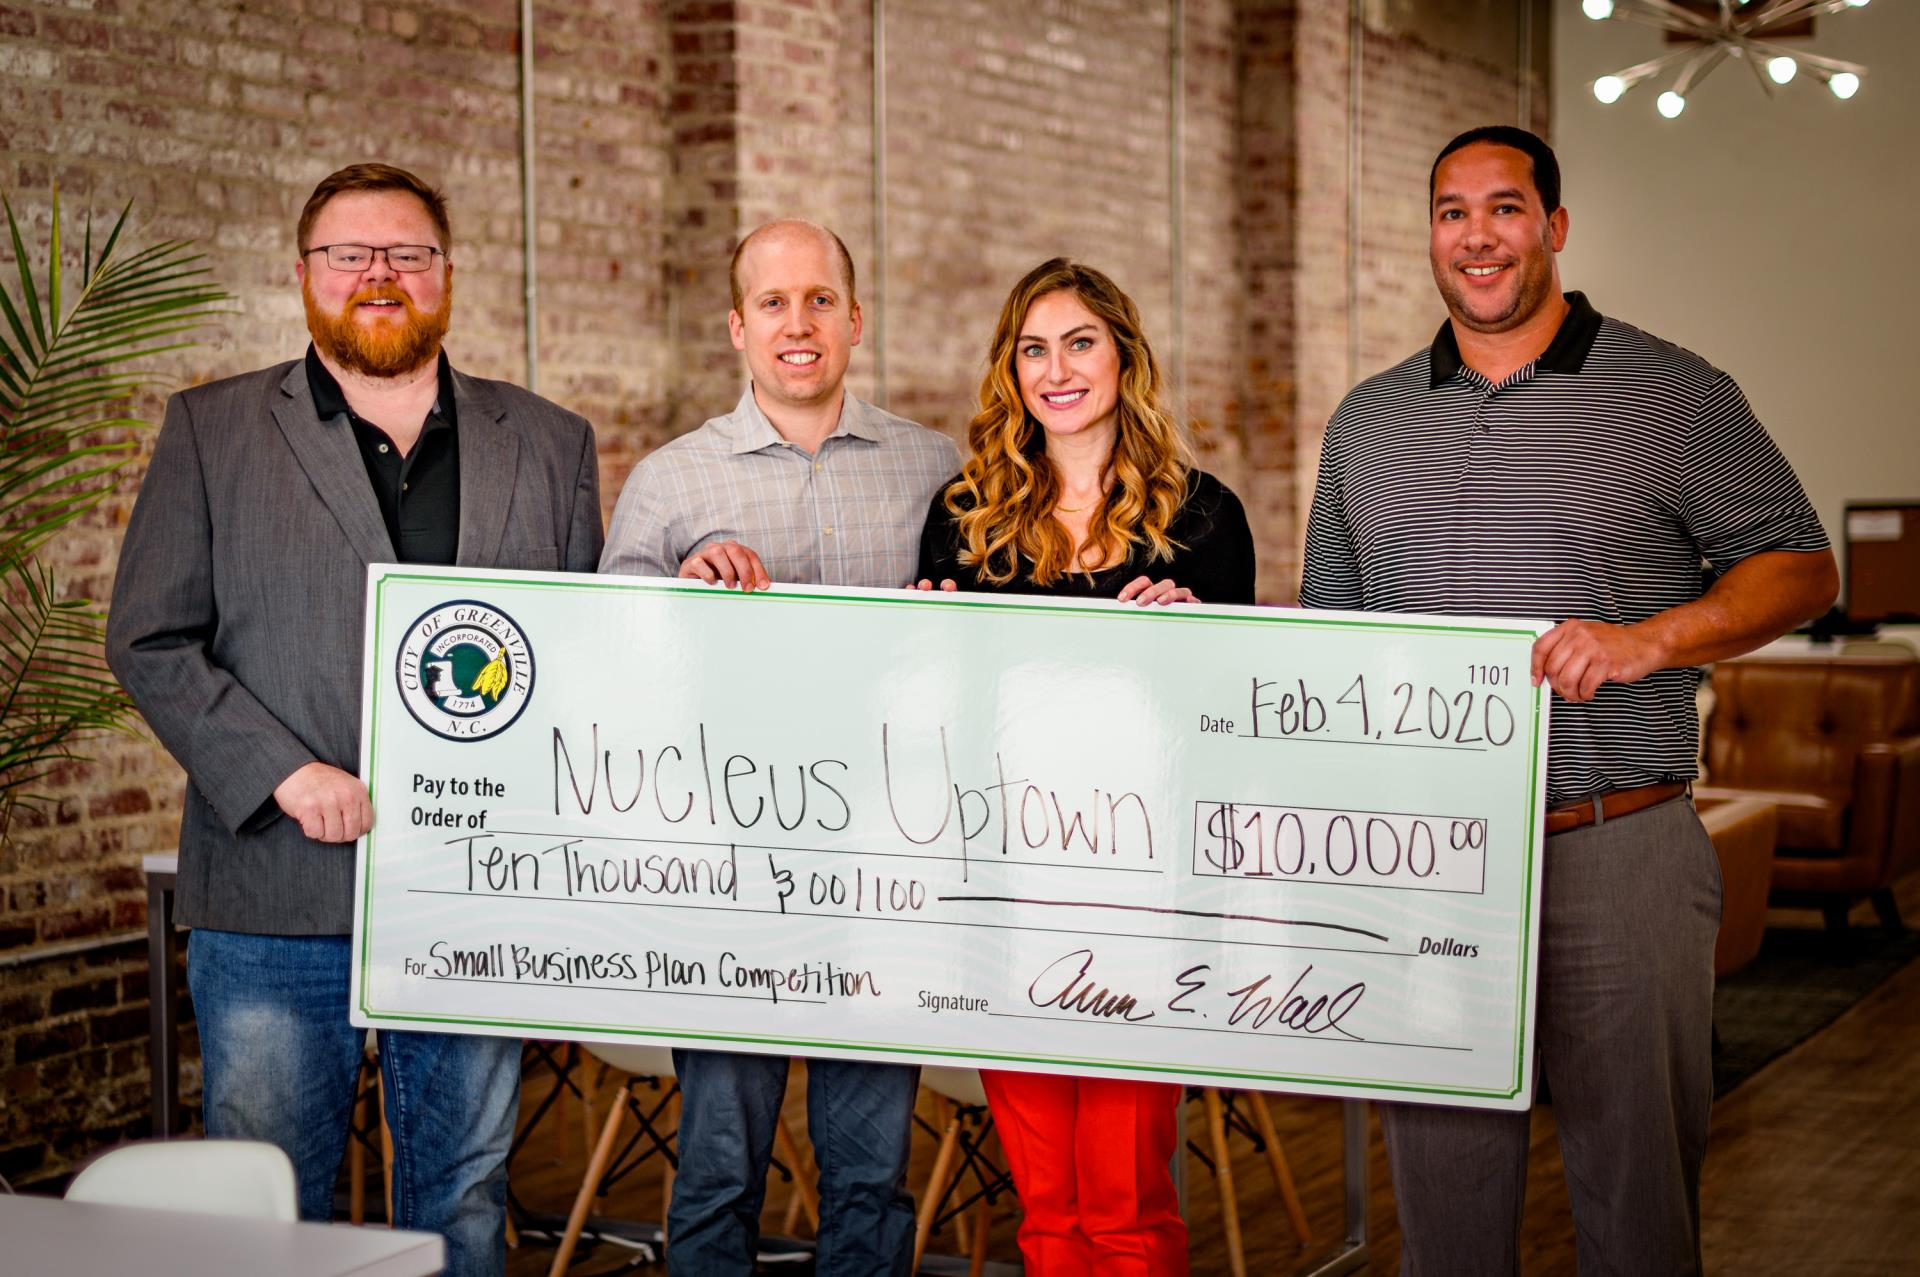 Nucleus Uptown Small Business Winner